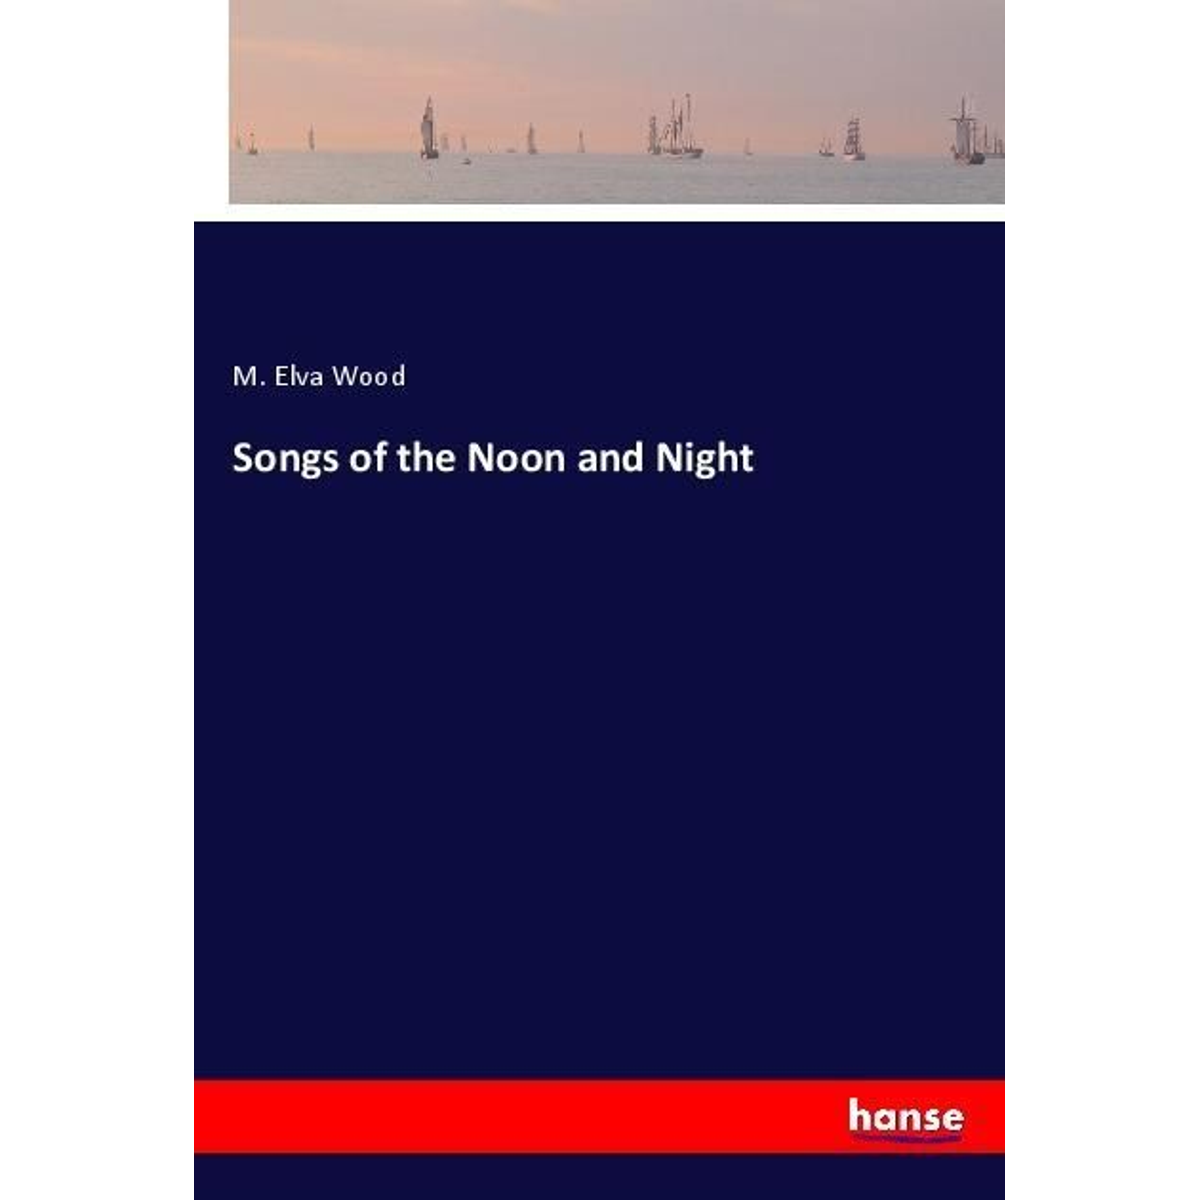 Songs of the Noon and Night